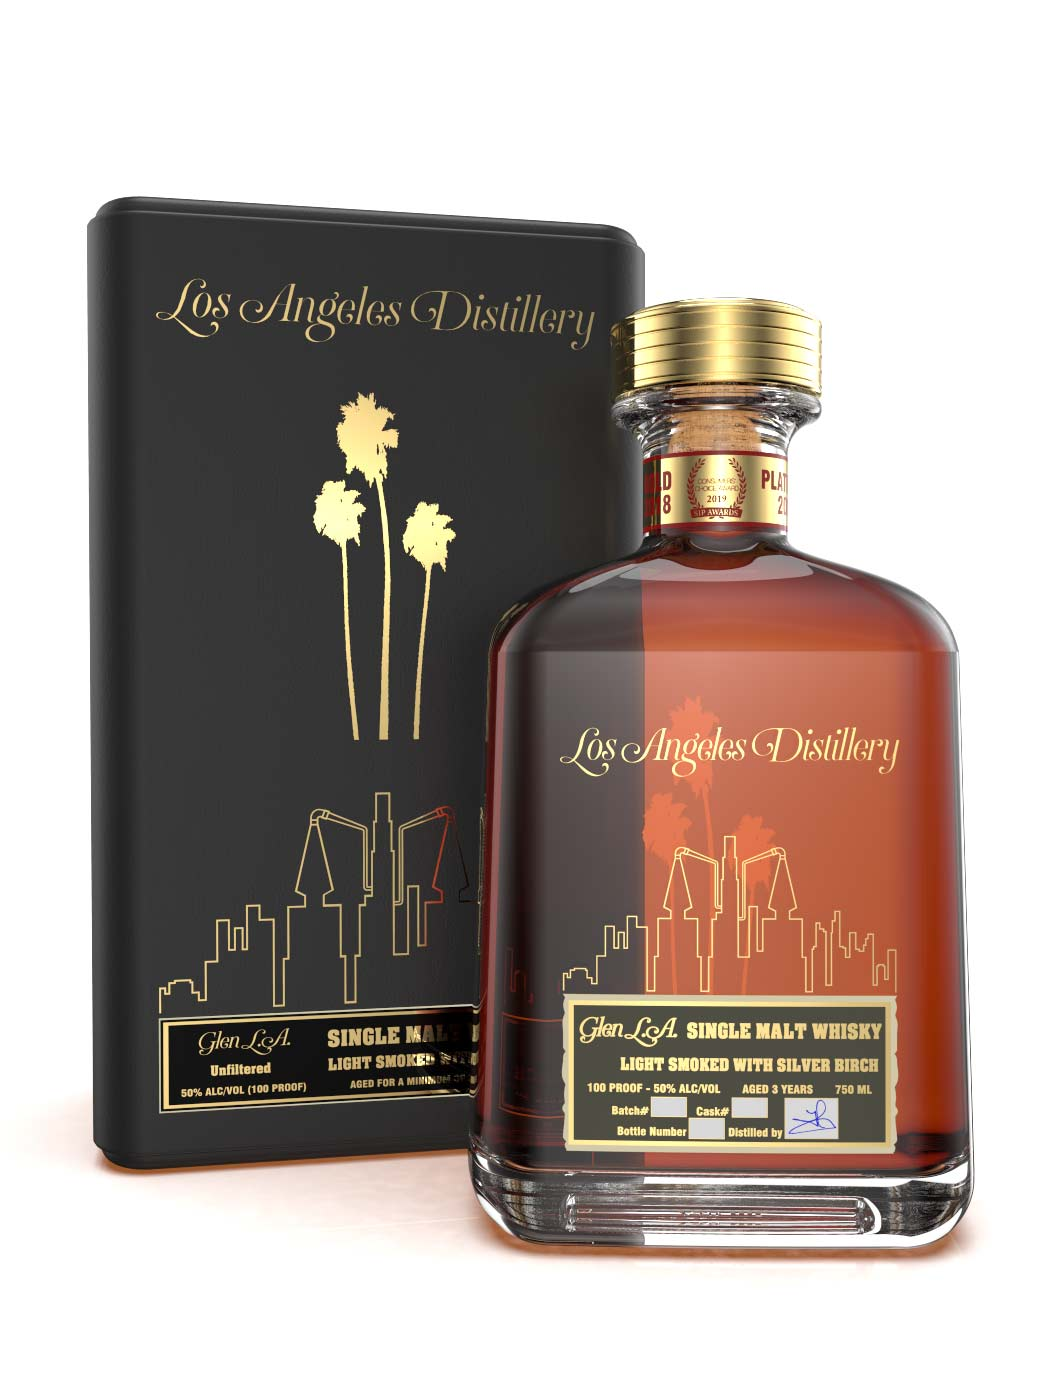 LA Distillery's Light Smoke Single Malt Whiskey Collector's Edition